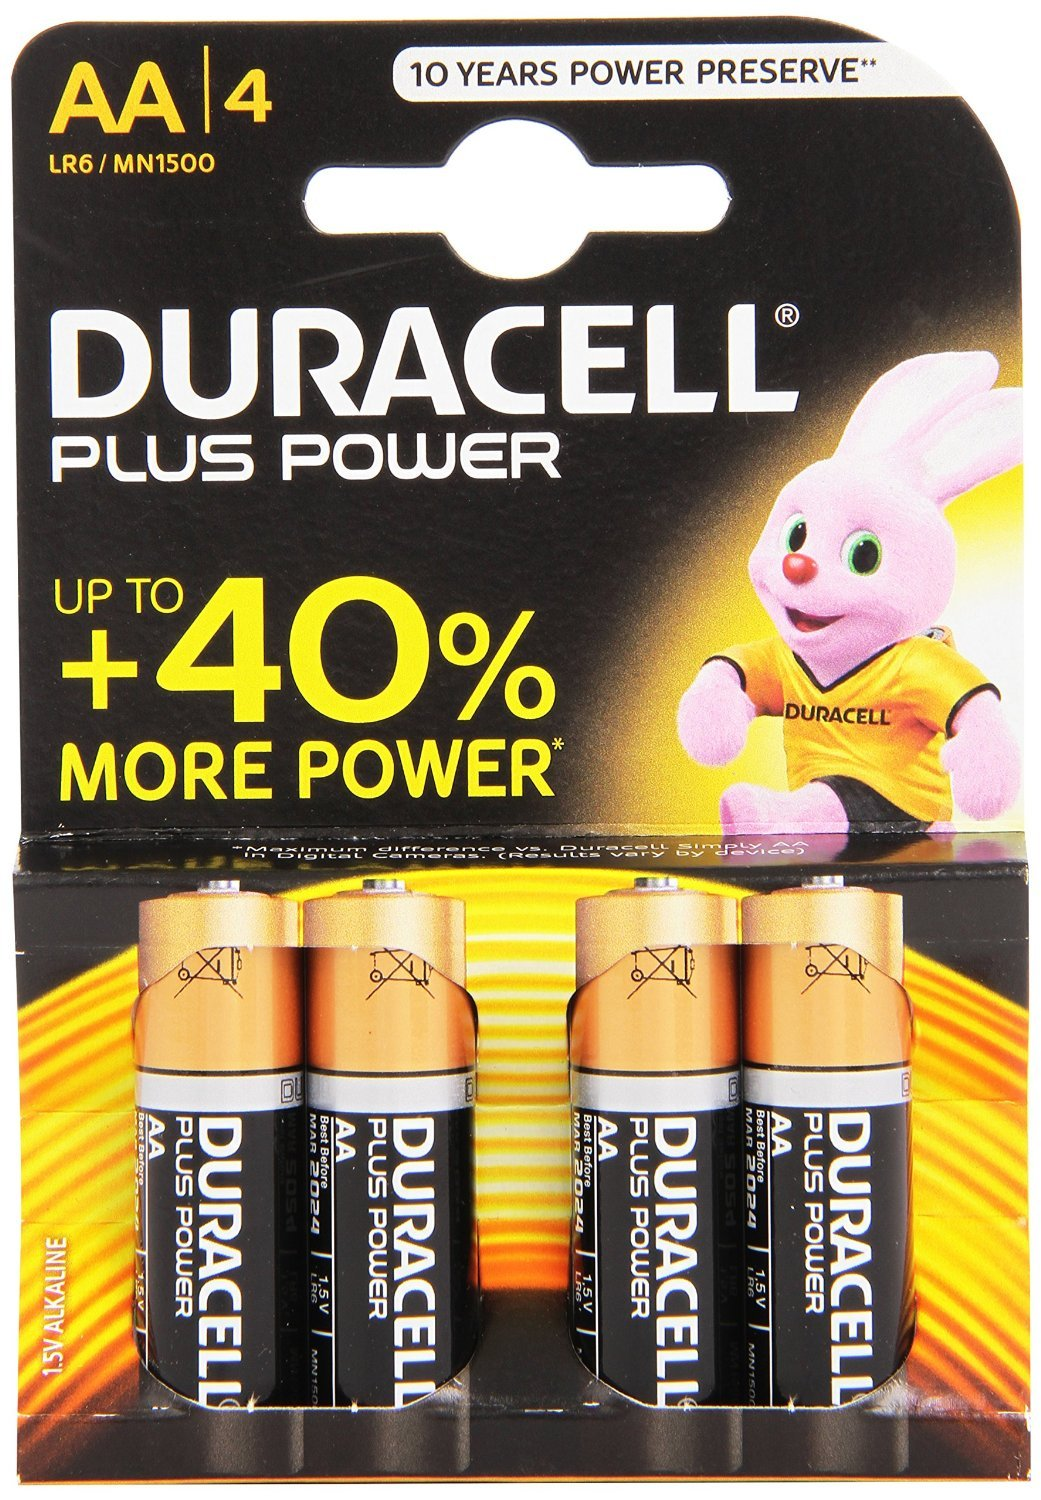 Duracell Plus power AA batteries pack of 4 - Great manufacturer Longer Lasting